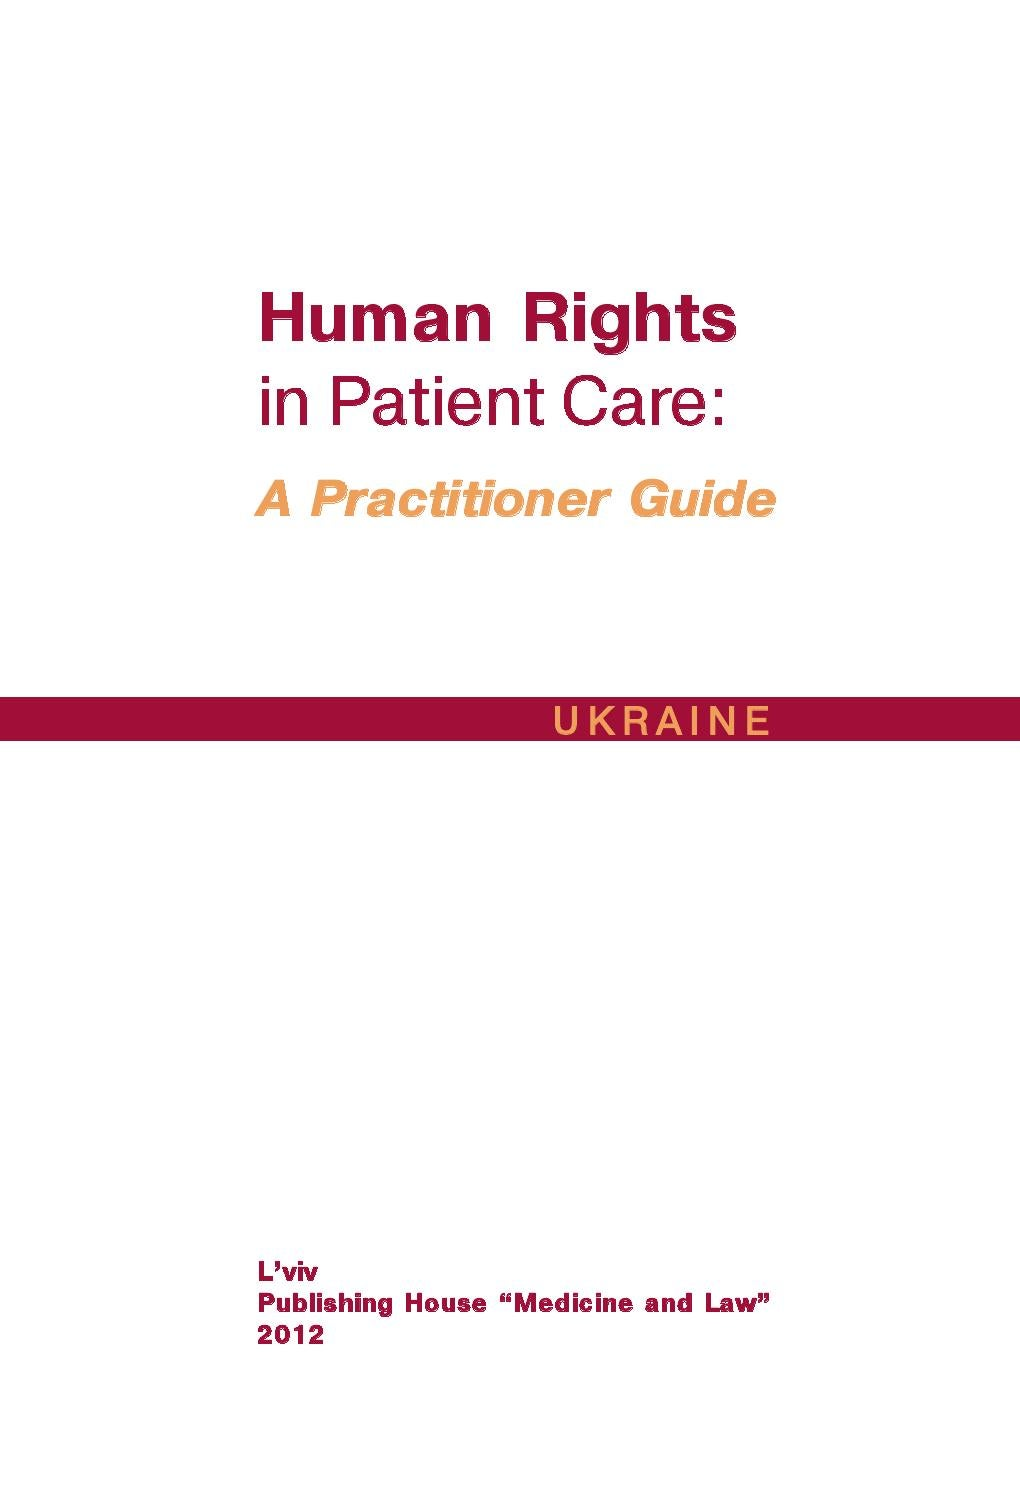 Human Rights in Patient Care: A Practitioner Guide by